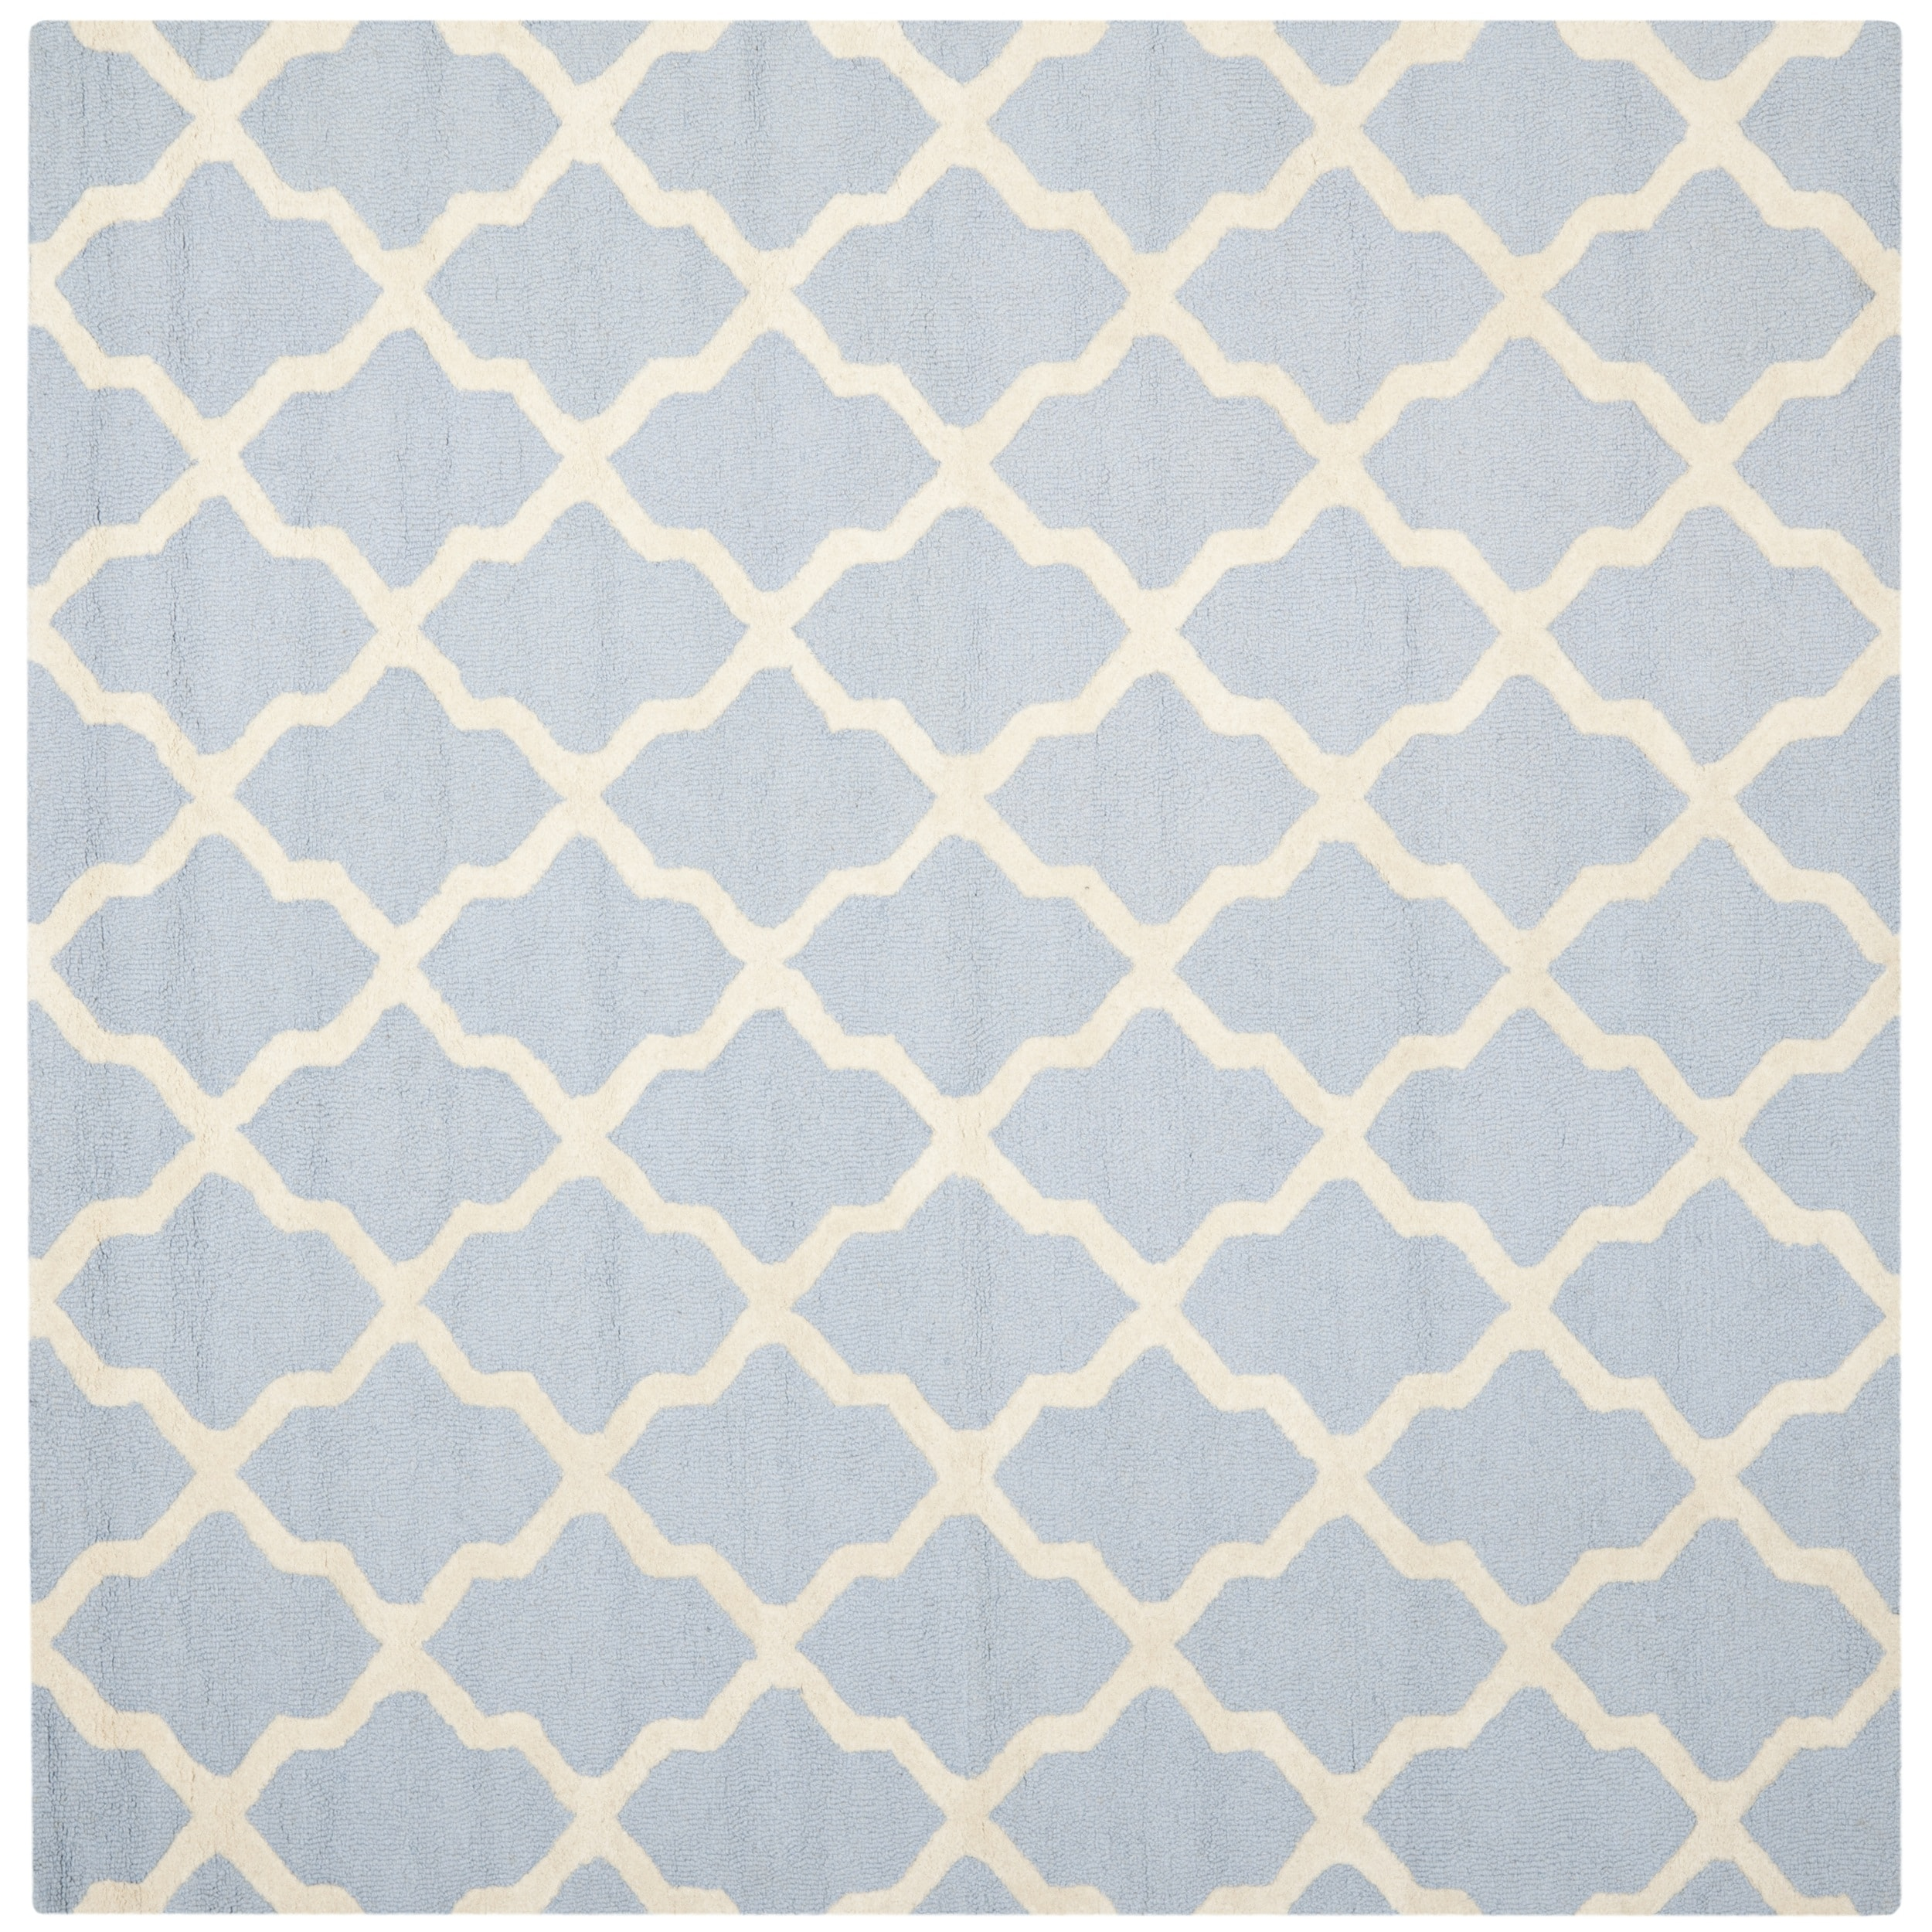 safavieh dining cod kitchen geometric amazon blue dp hand rug com cotton light jute x and grey woven gold collection area cape